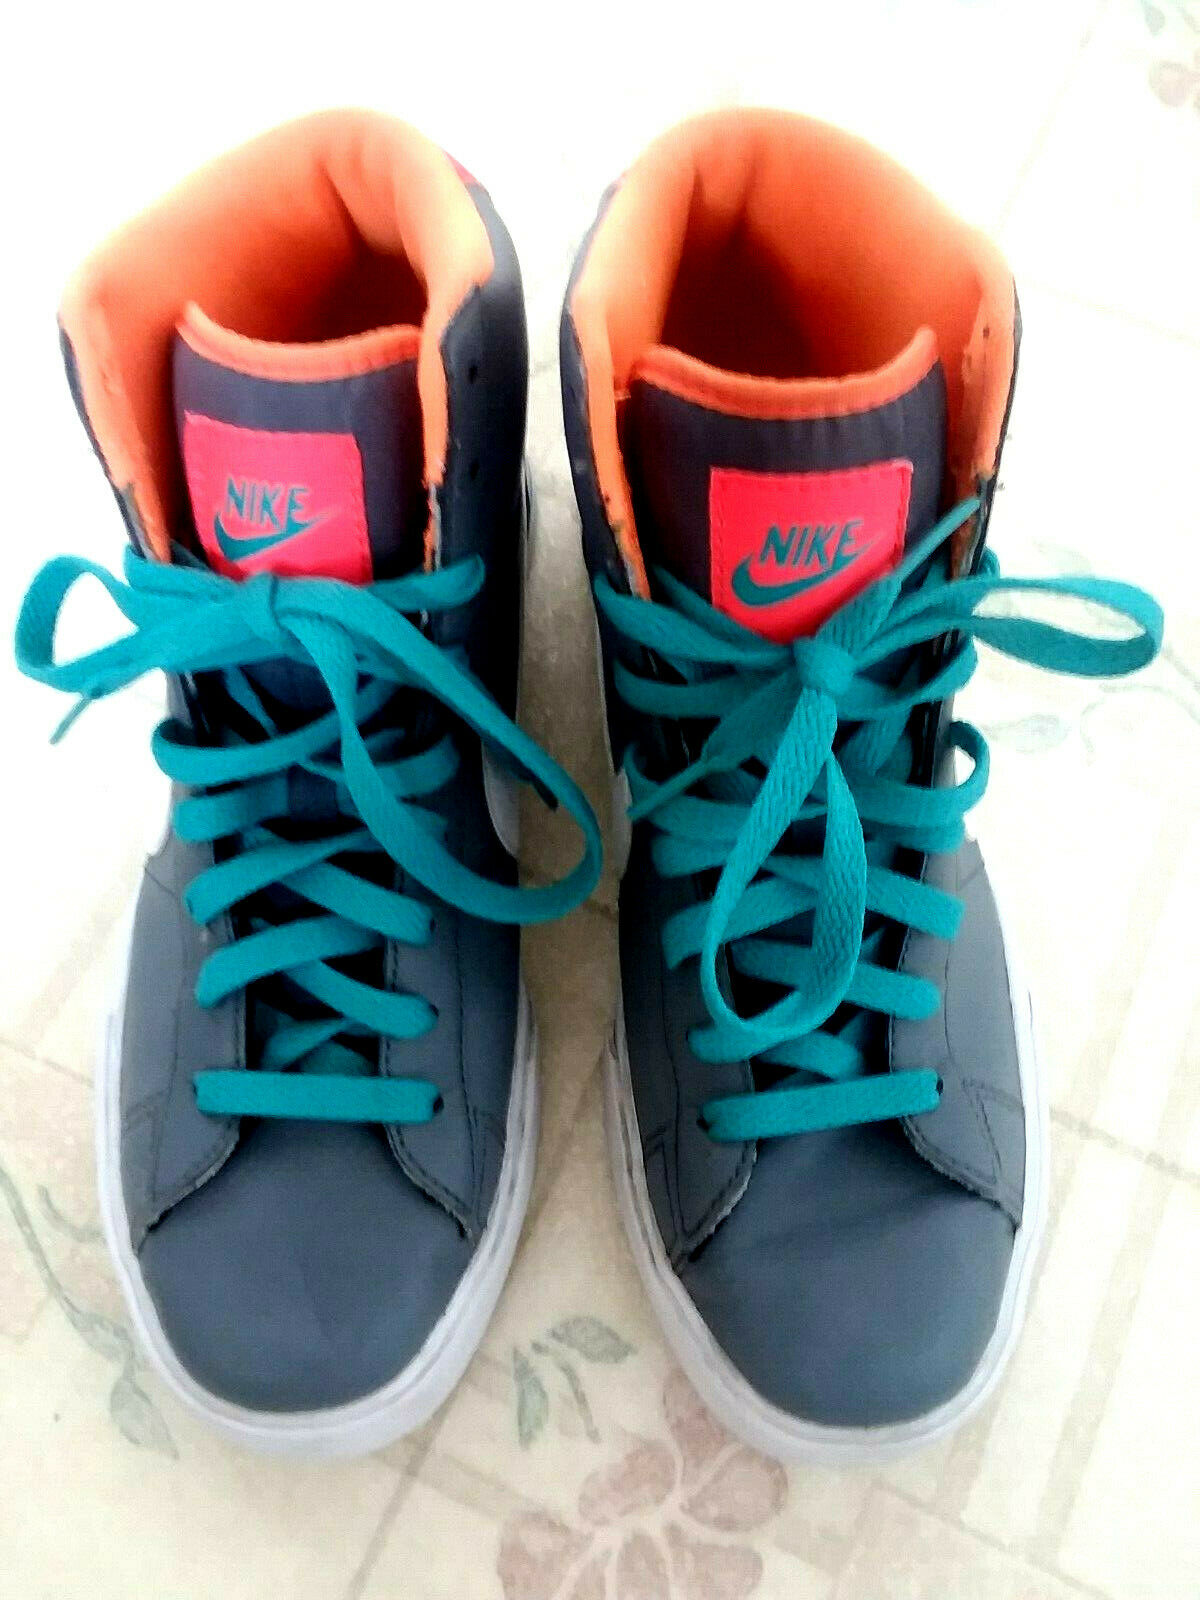 f87c0cb40 SWEET SWEET - EXC Women s SZ 8 NIKE CLASSIC BASKETBALL SHOES Model  354697-026